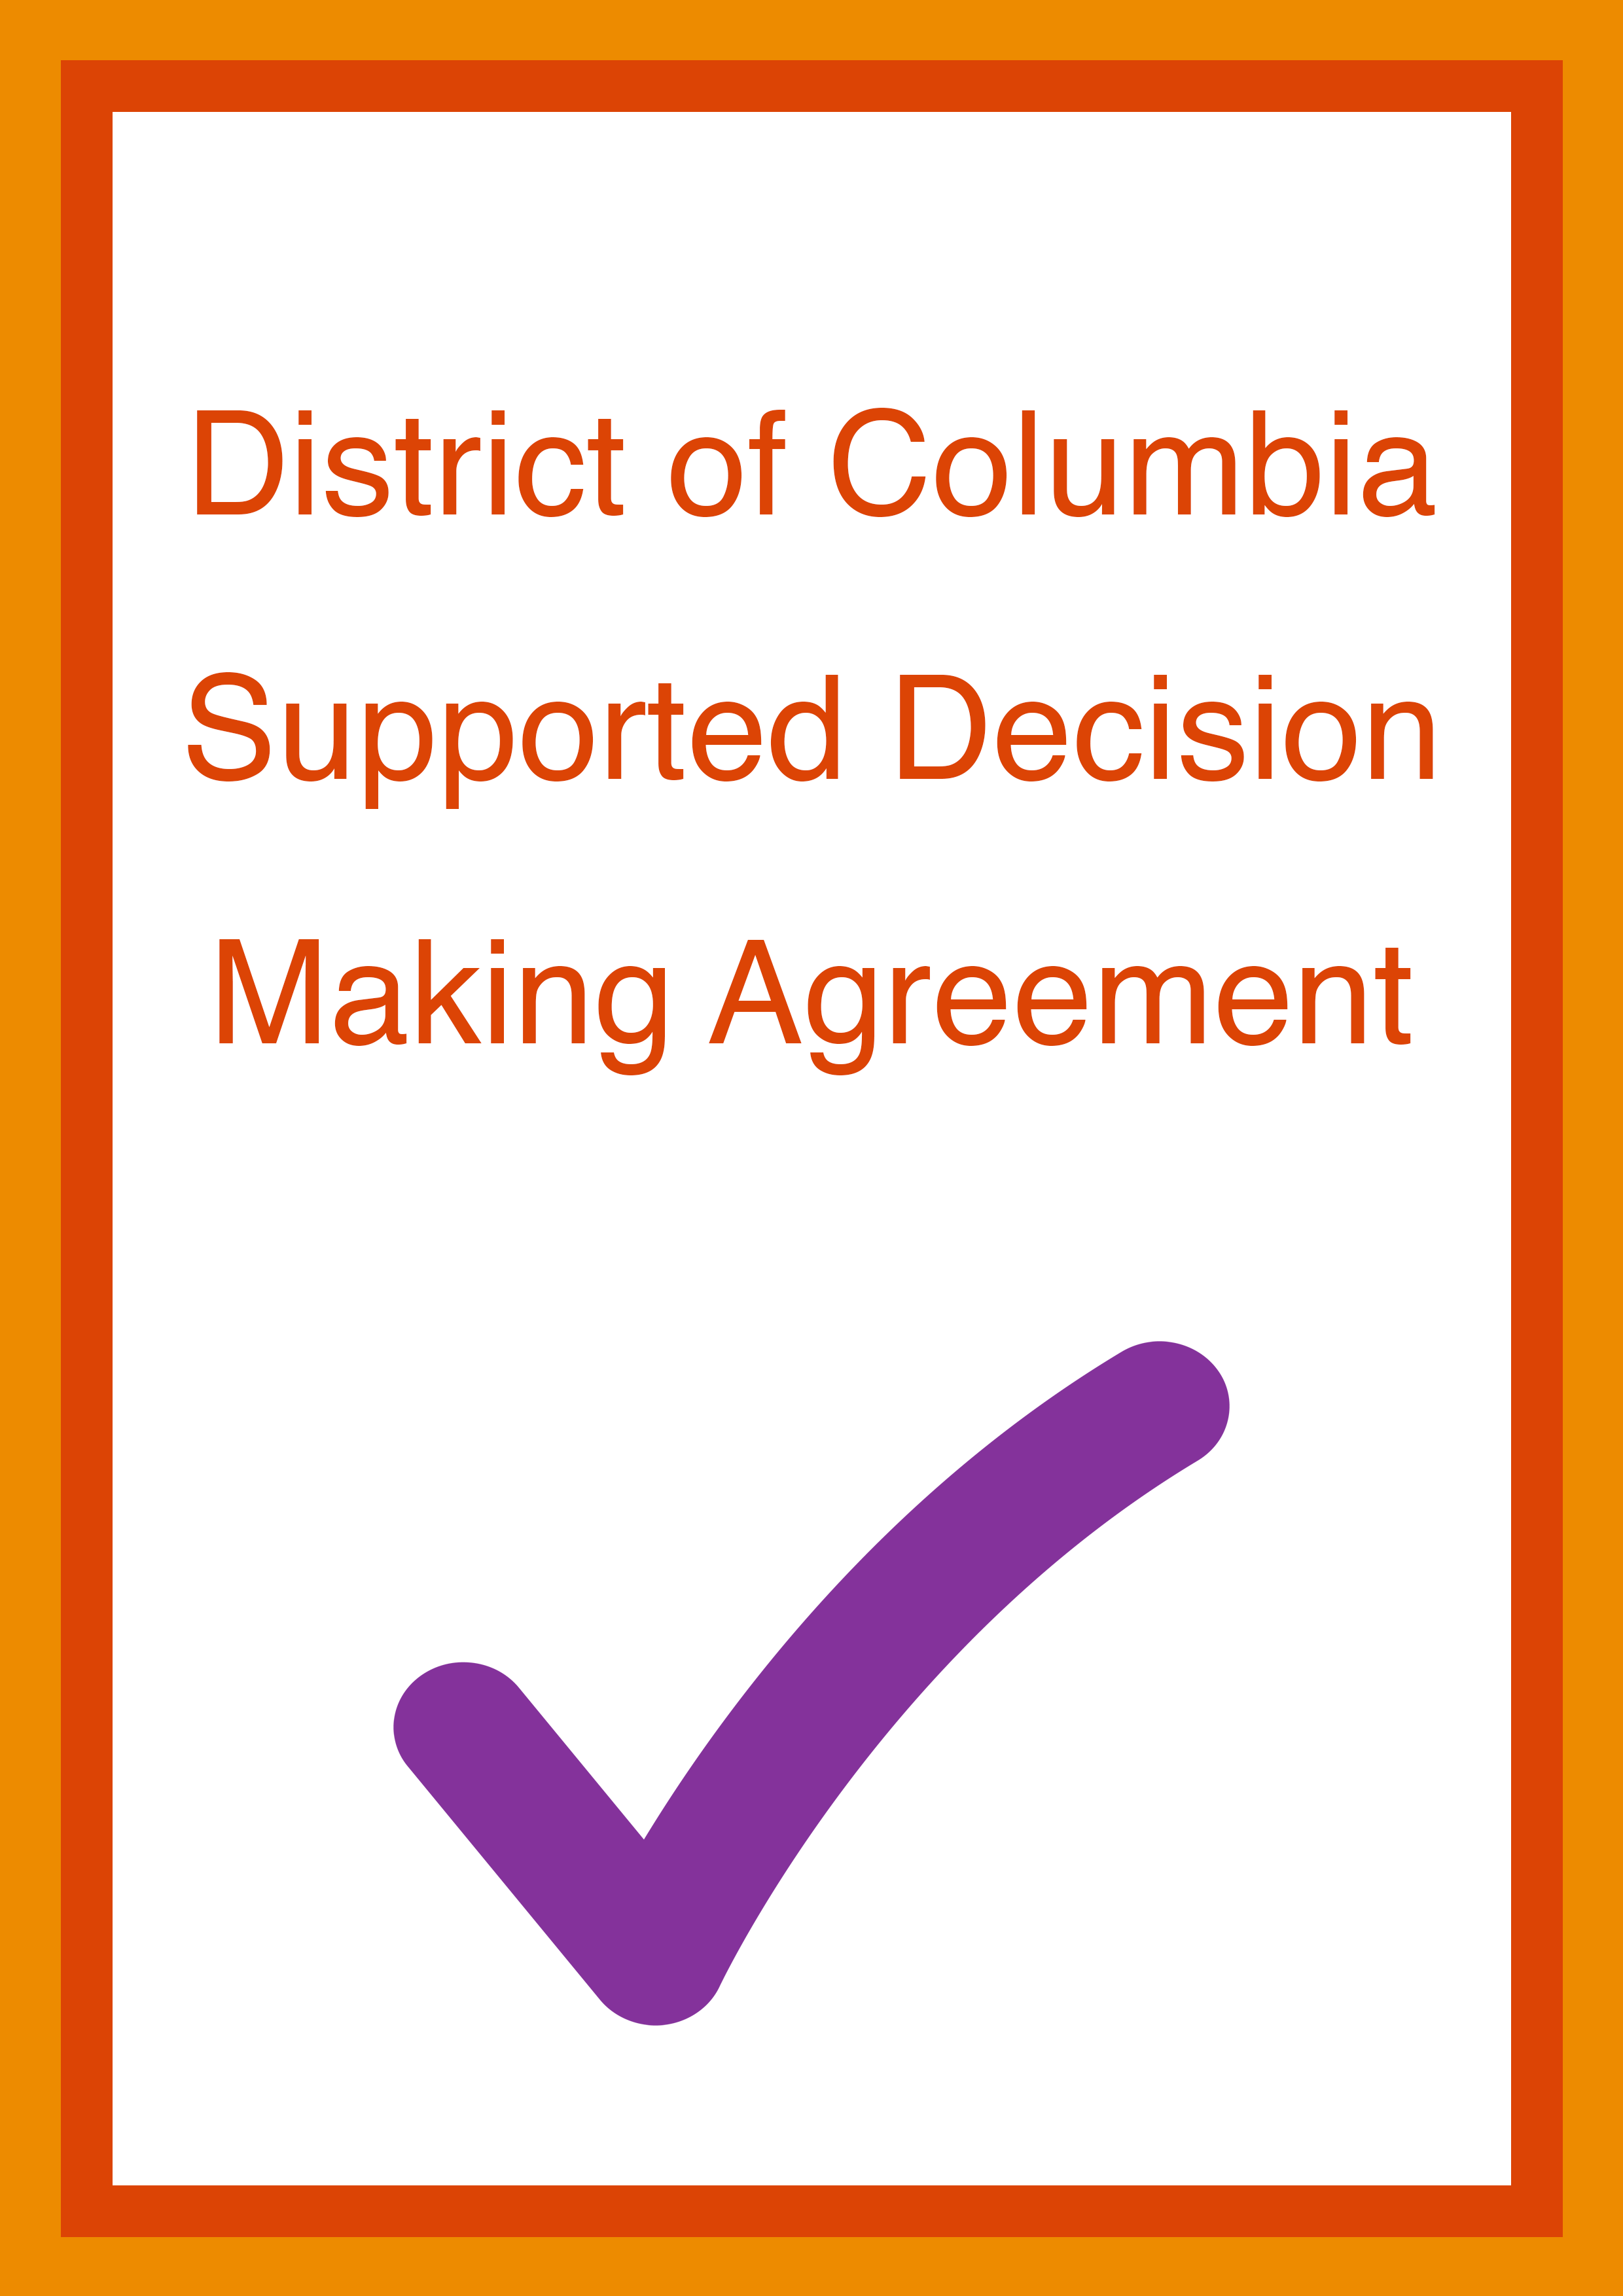 Cover art for: District of Columbia Supported Decision Making Agreement